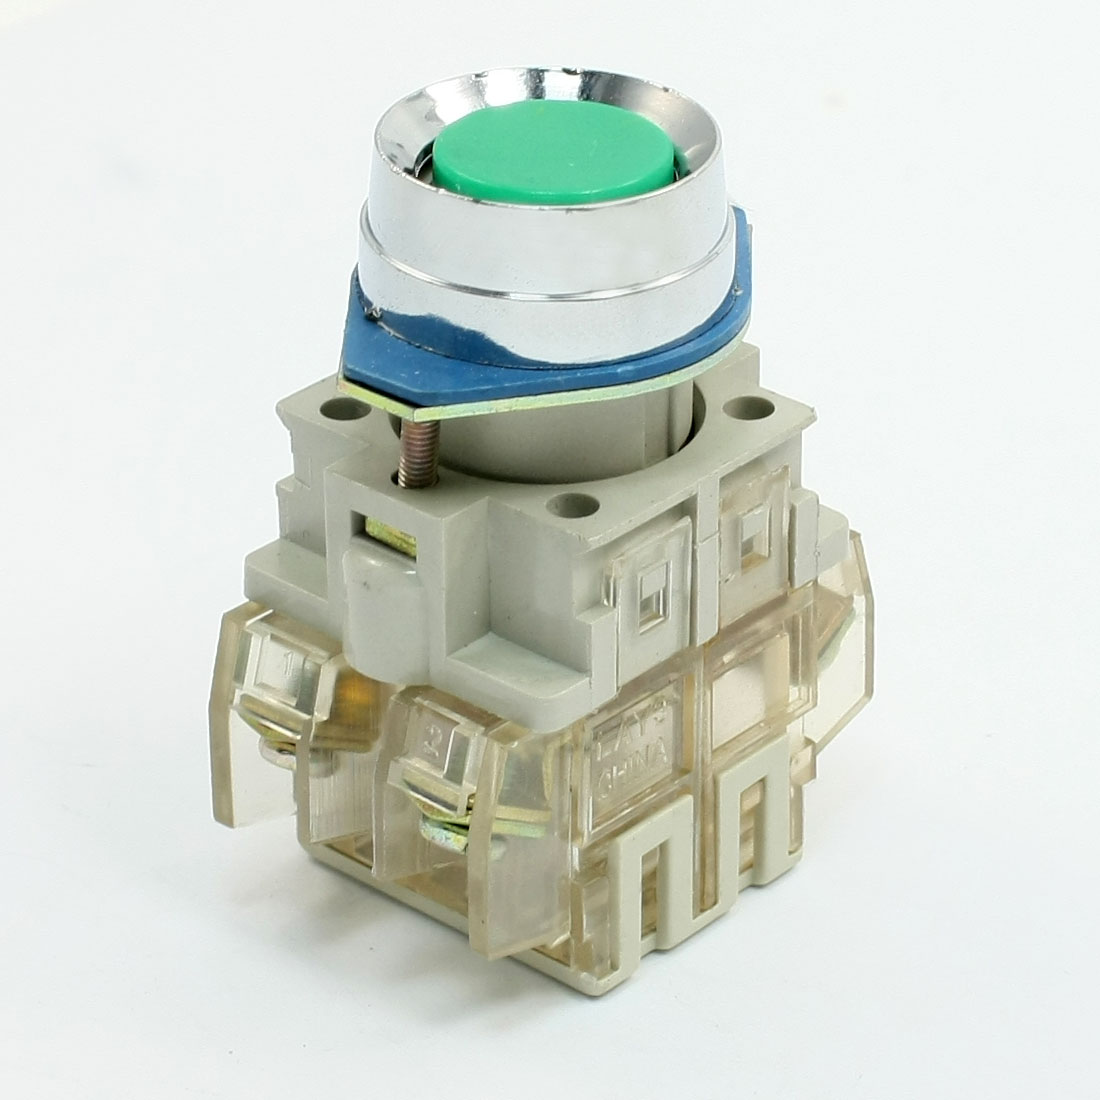 Green-Round-Cap-Momentary-Contact-NO-NC-Push-Button-Switch-AC-250V-4-5A